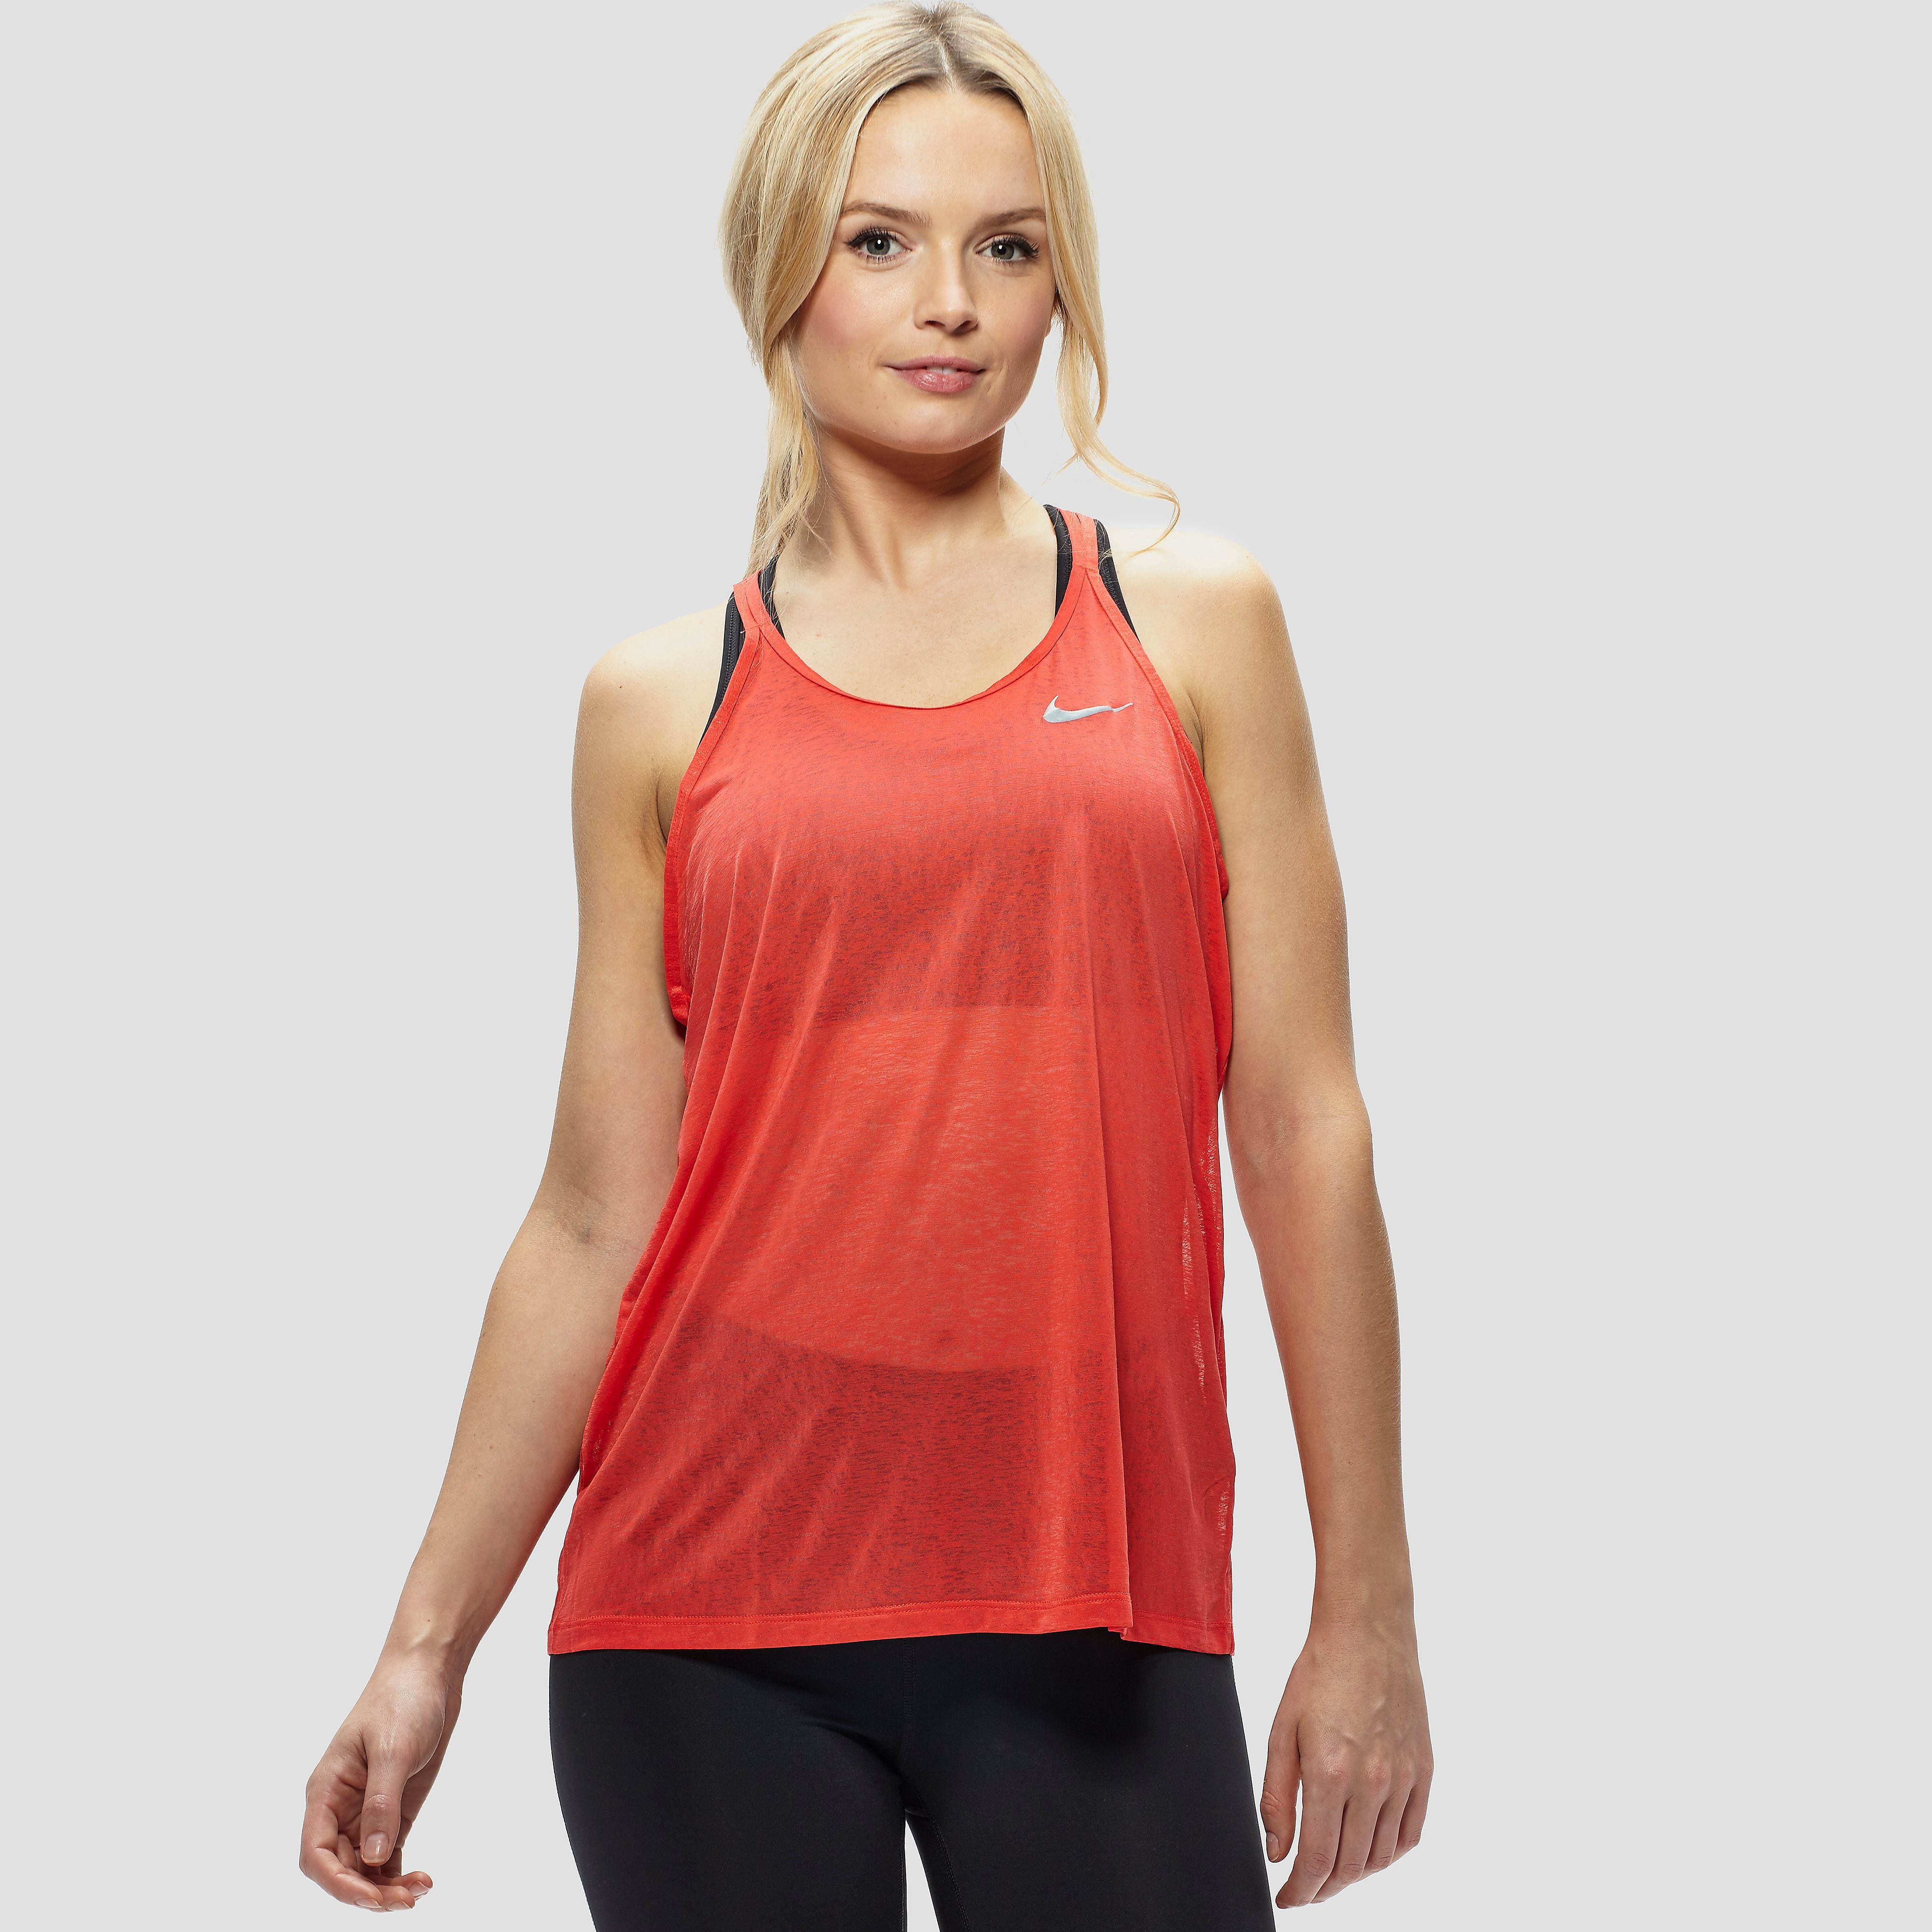 Nike COOL BREEZE STRAPPY Running vest